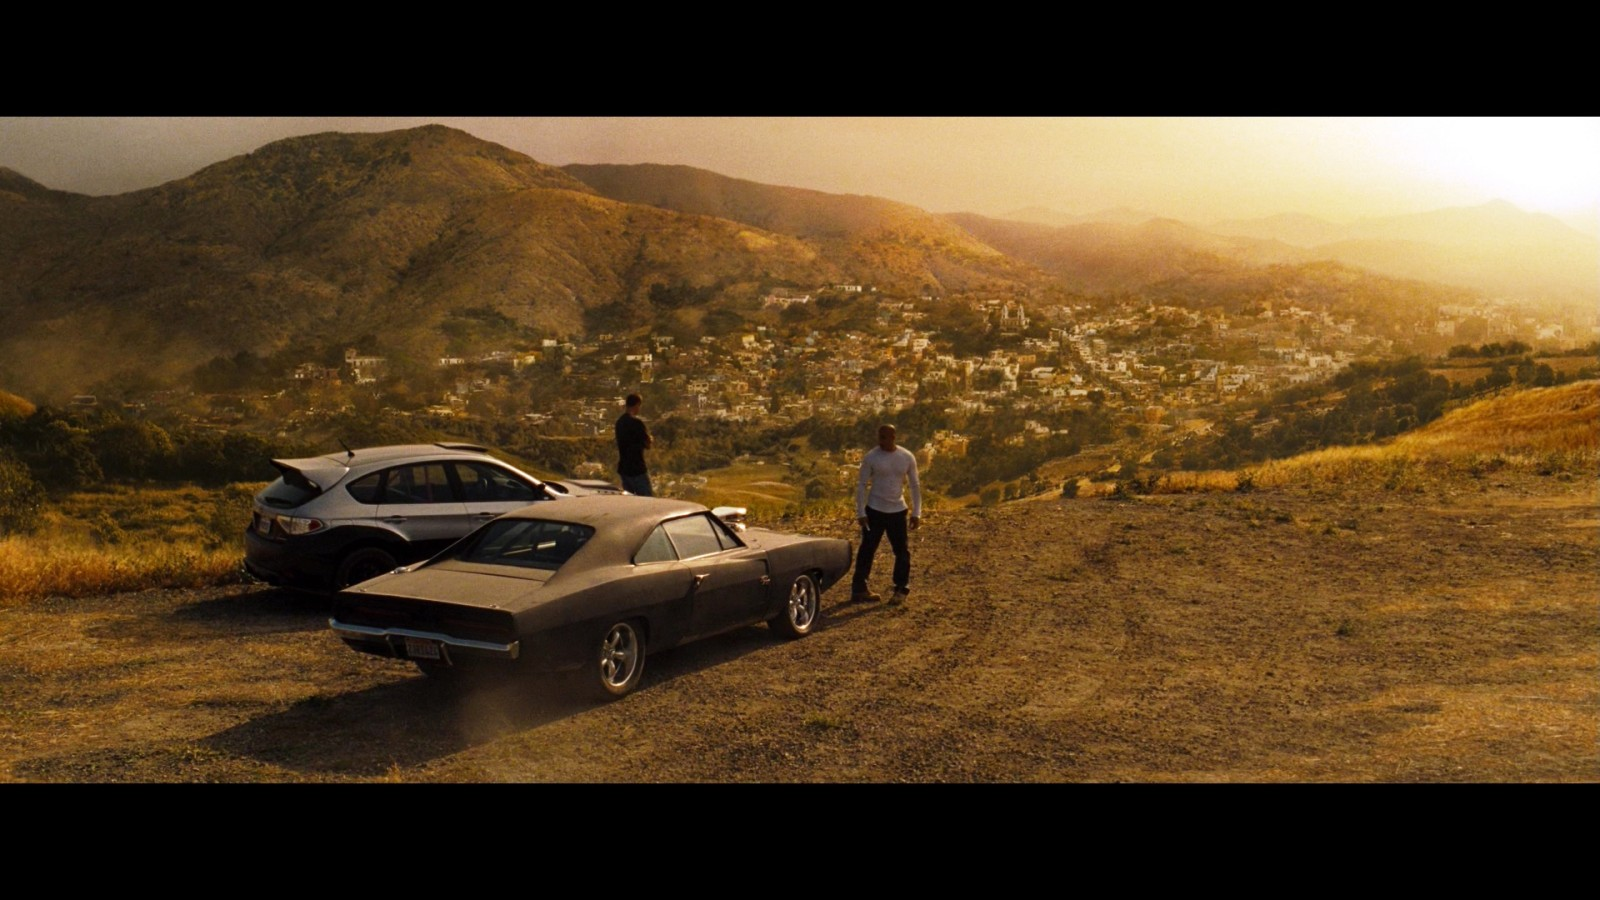 Hd Fast And Furious Car Wallpapers Free Pixelstalk Fast And Furious